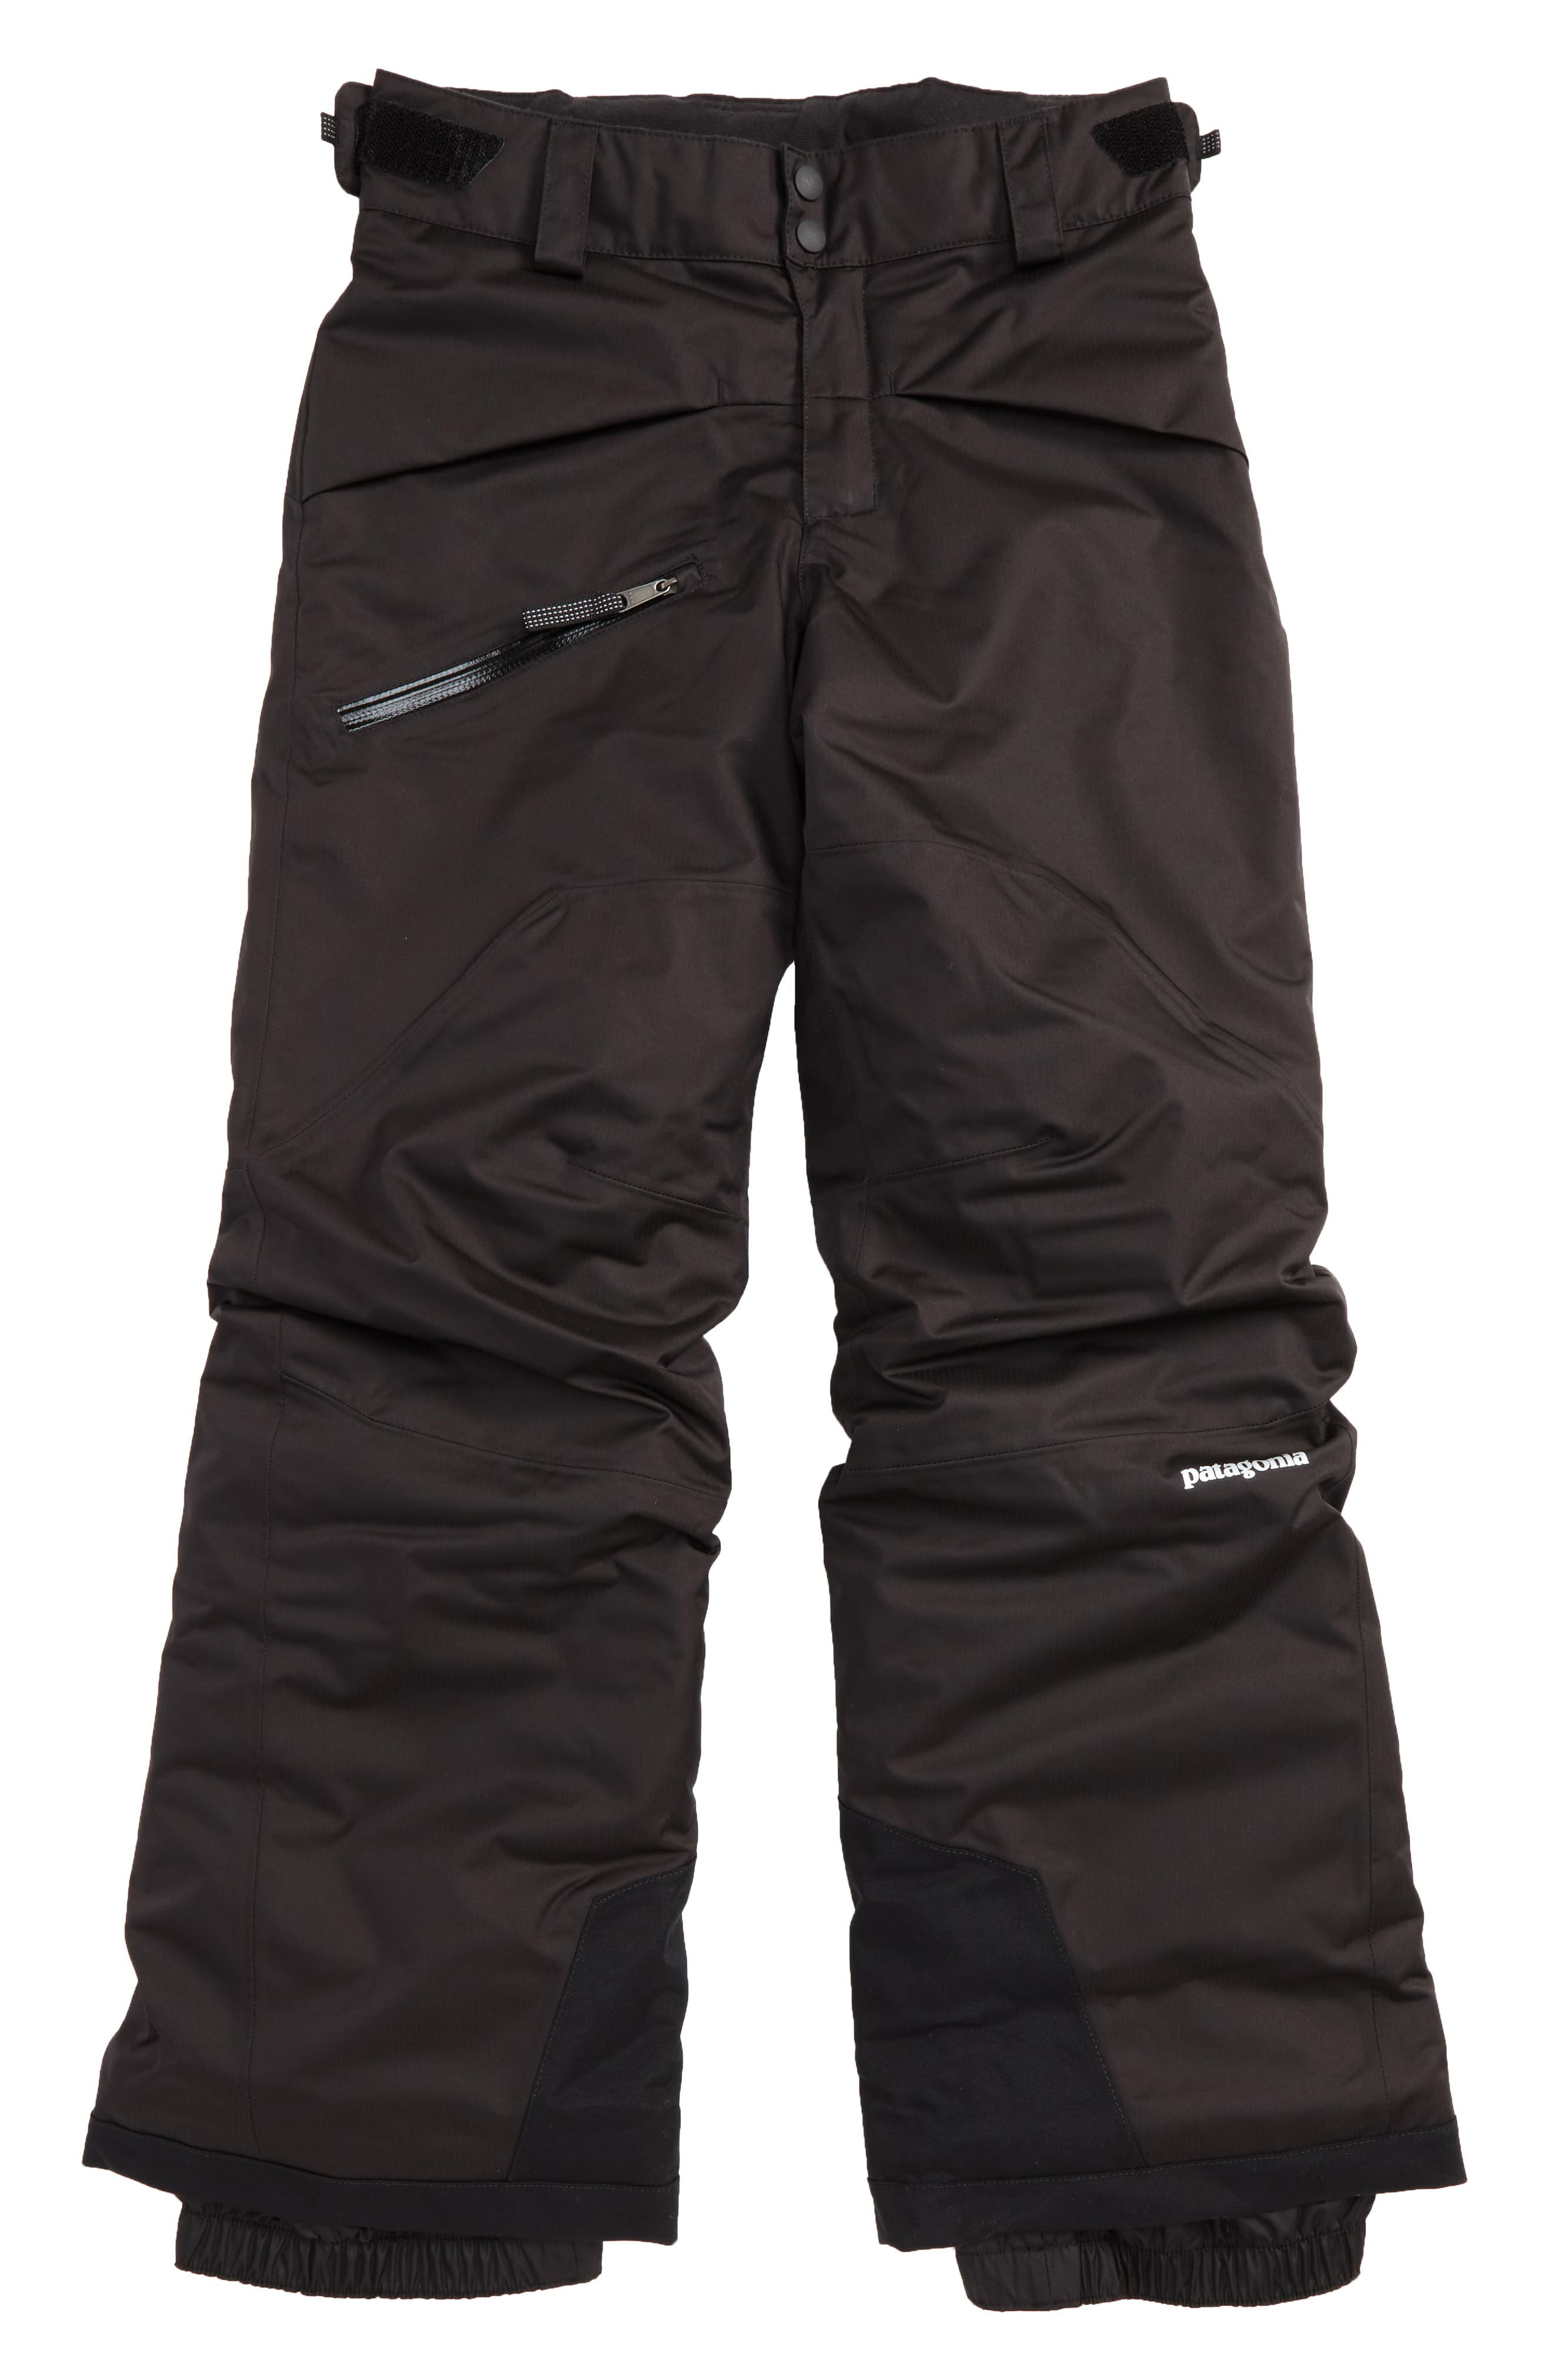 Alternate Image 1 Selected - Patagonia Snowshot Insulated Snow Pants (Little Boys & Big Boys)